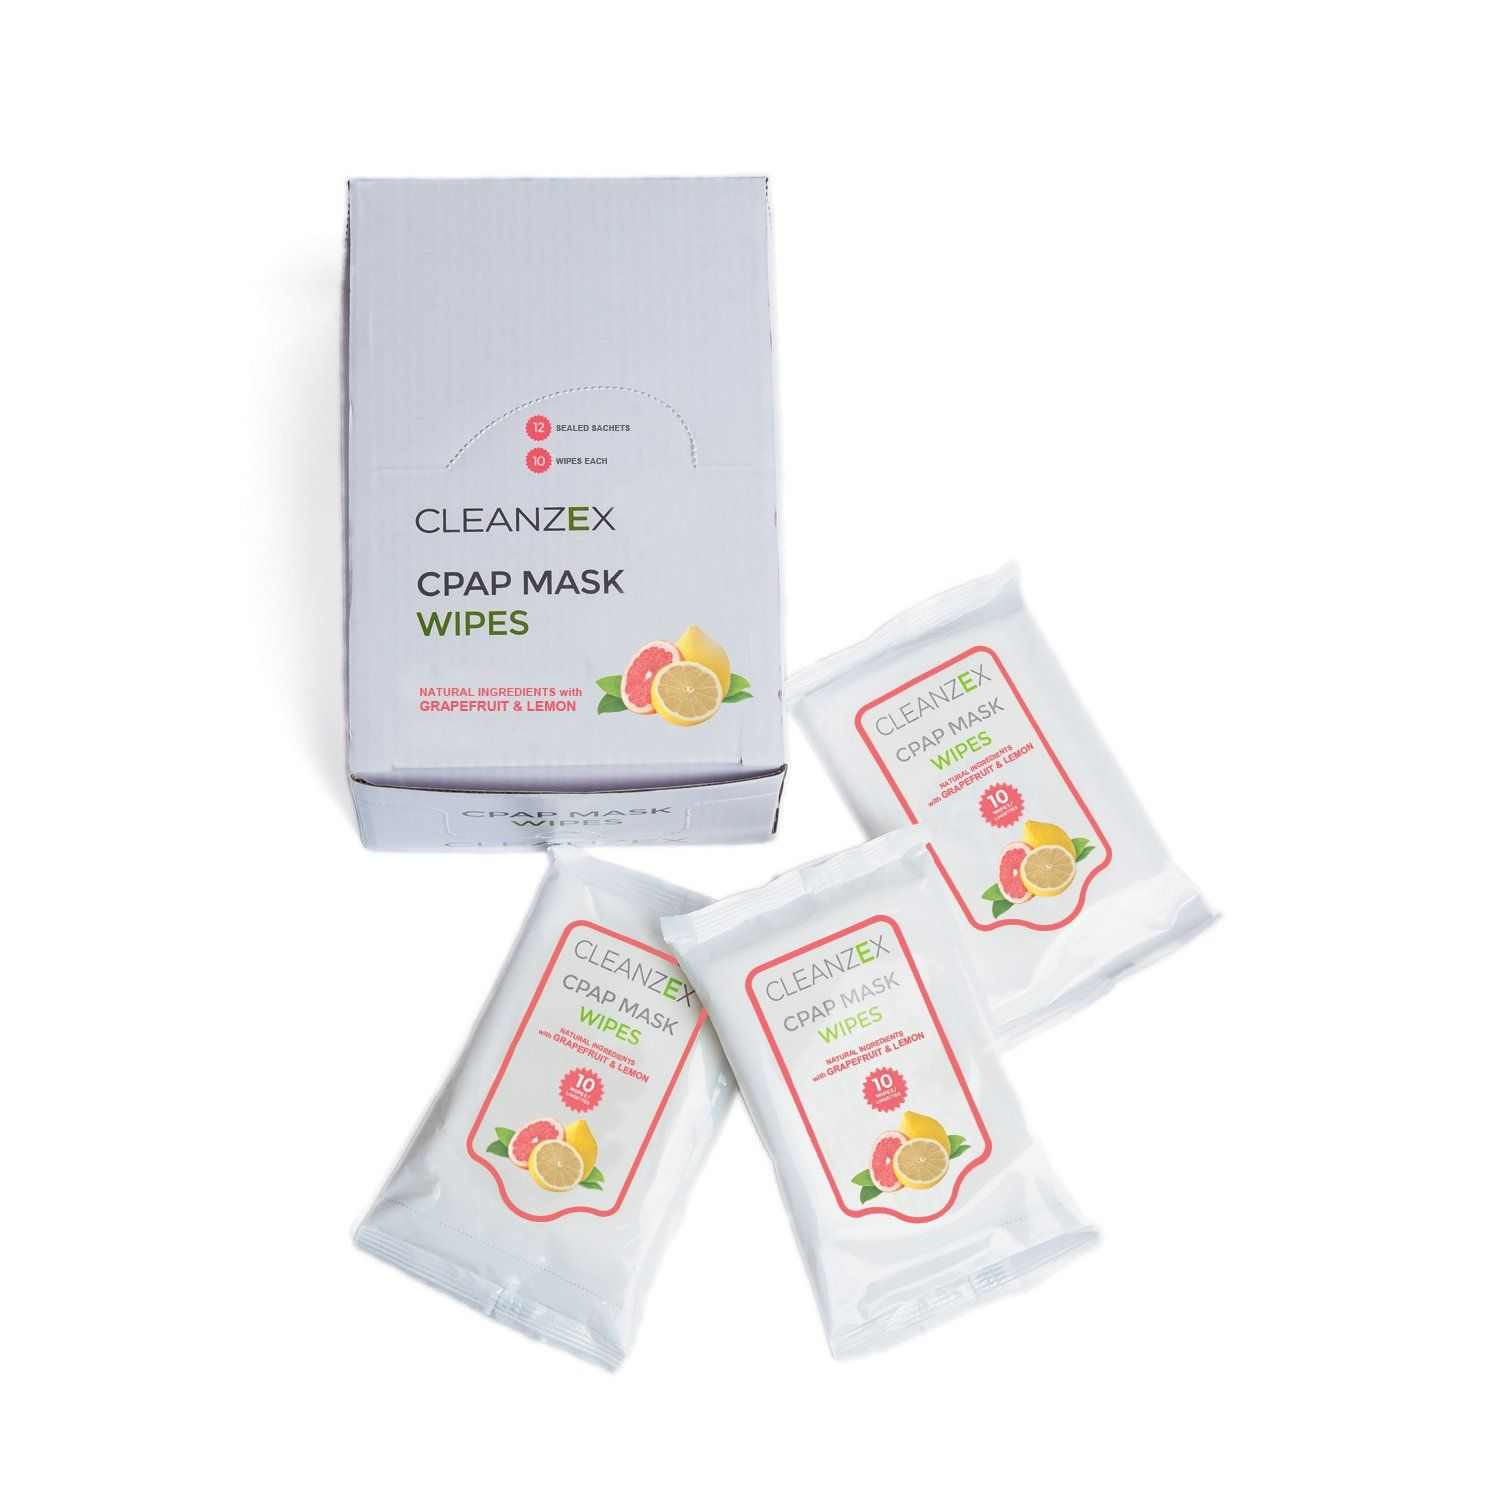 PÜRDOUX CPAP Mask Wipes with Grapefruit Lemon scent (Box of total ...